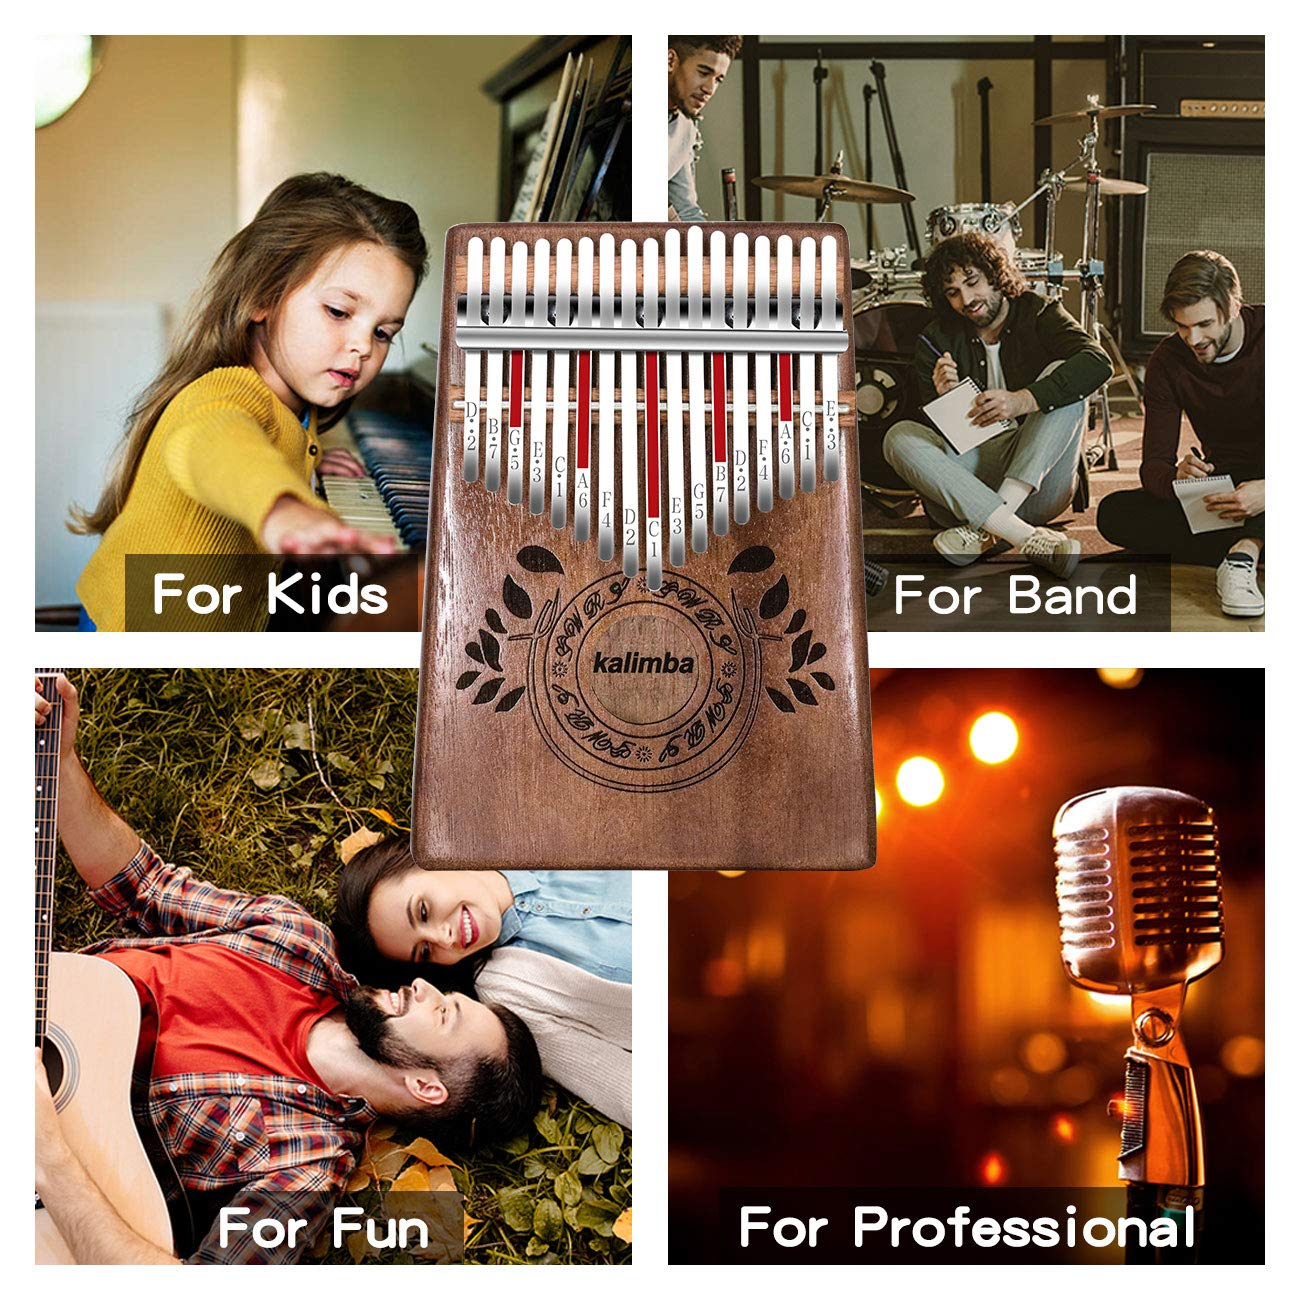 UNOKKI Kalimba 17 Keys Thumb Piano with Study Instruction and Tune Hammer, Portable Solid African Wood Finger Piano, Gift for Kids Adult Beginners (Chocolate Brown). by UNOKKI (Image #5)